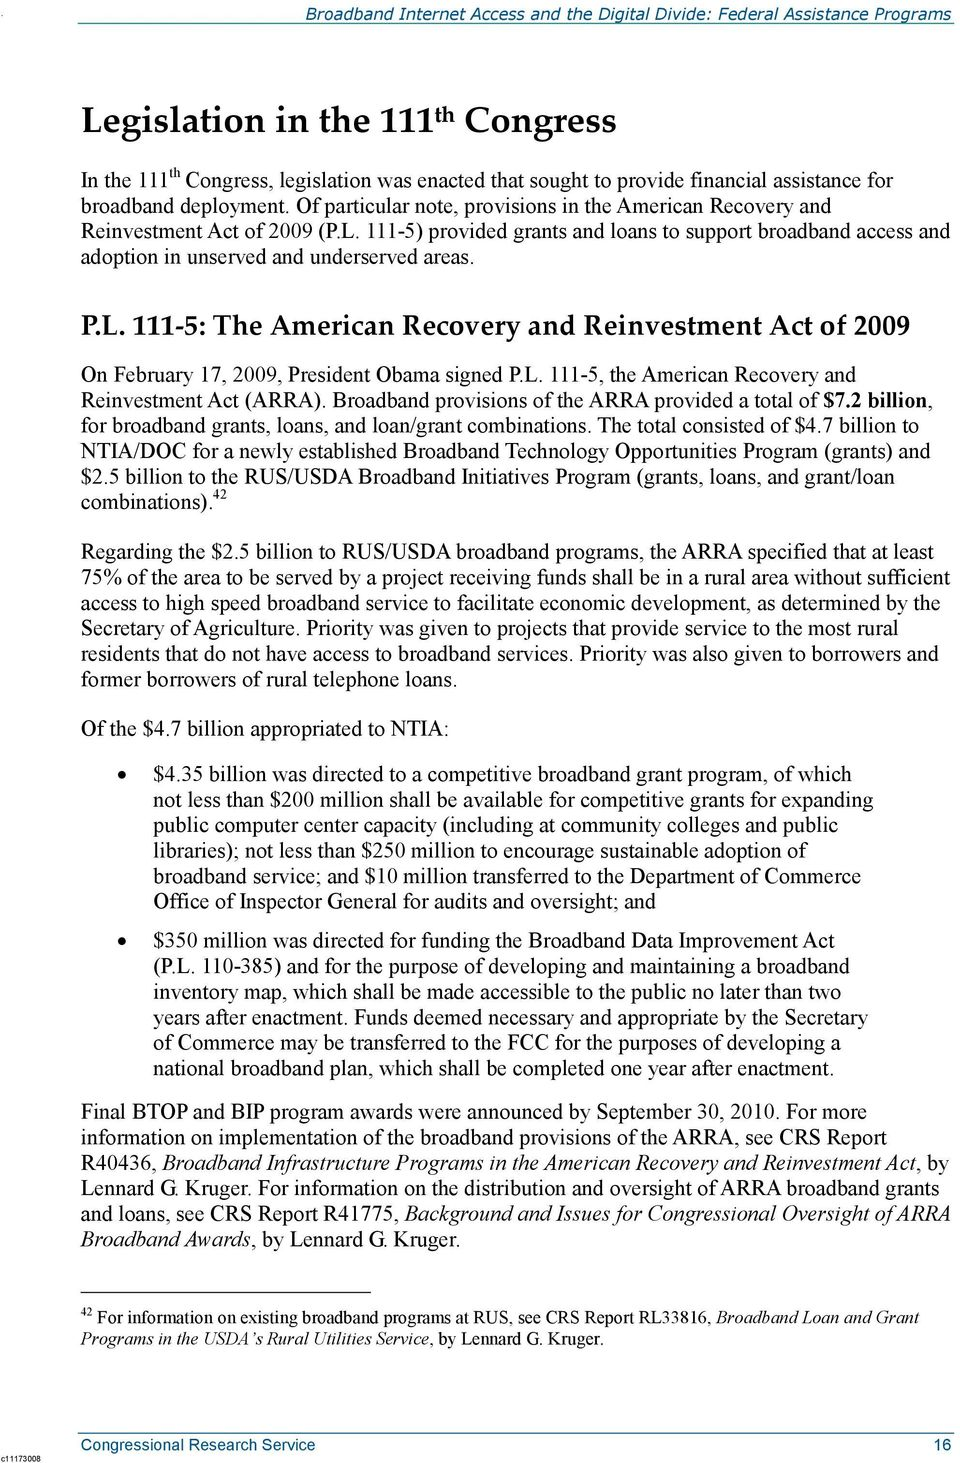 P.L. 111-5: The American Recovery and Reinvestment Act of 2009 On February 17, 2009, President Obama signed P.L. 111-5, the American Recovery and Reinvestment Act (ARRA).